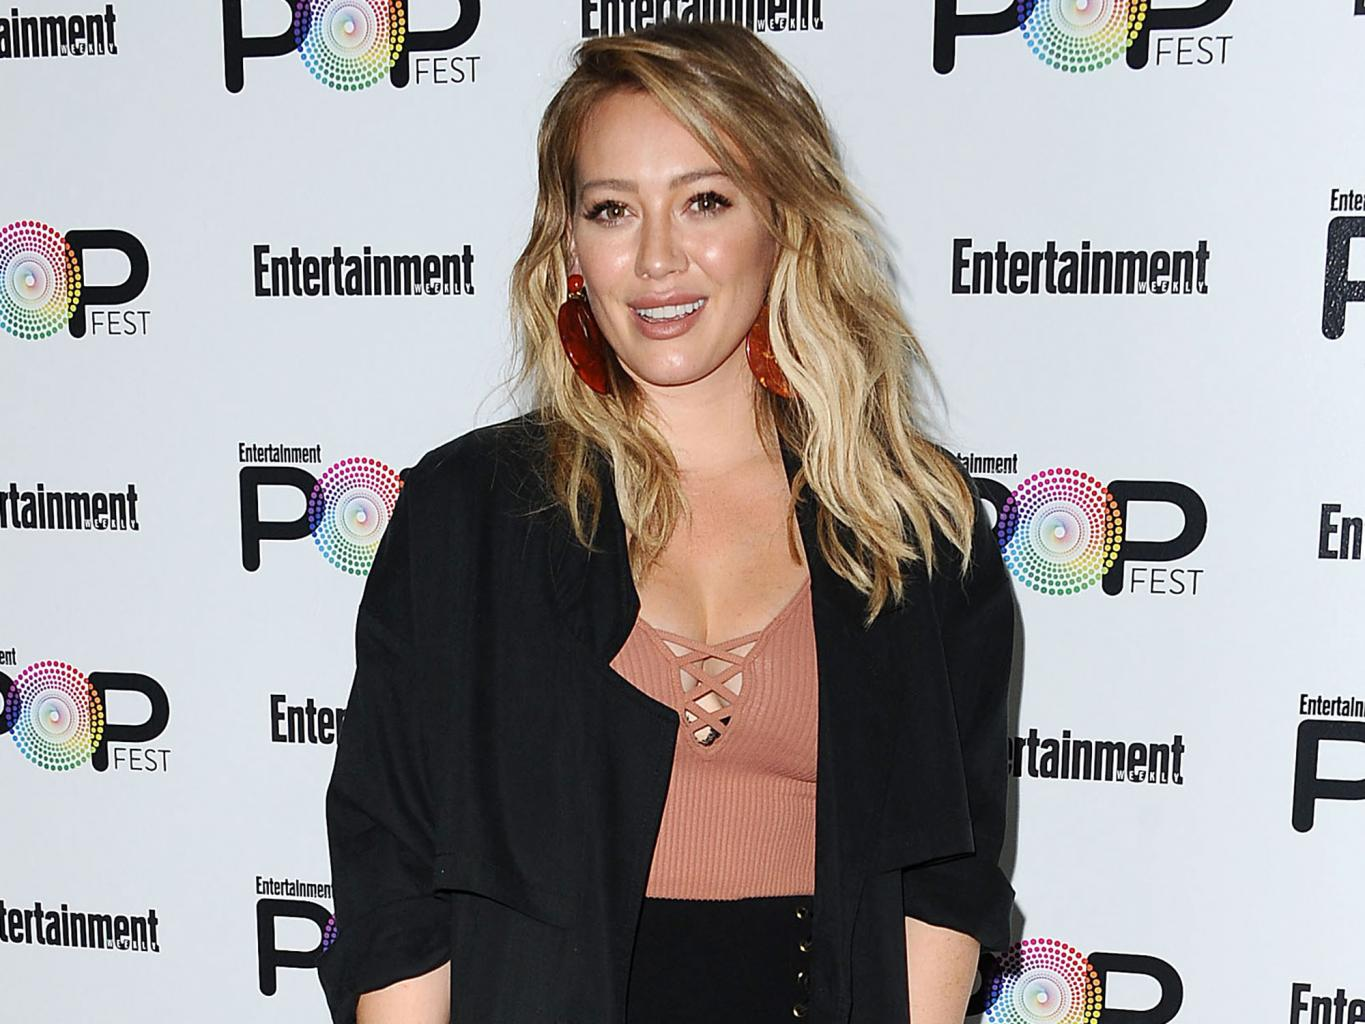 Hilary Duff Reveals Why She Doesn't 'Feel the Need to Get Married Again' — and What Would Make Her Jealous